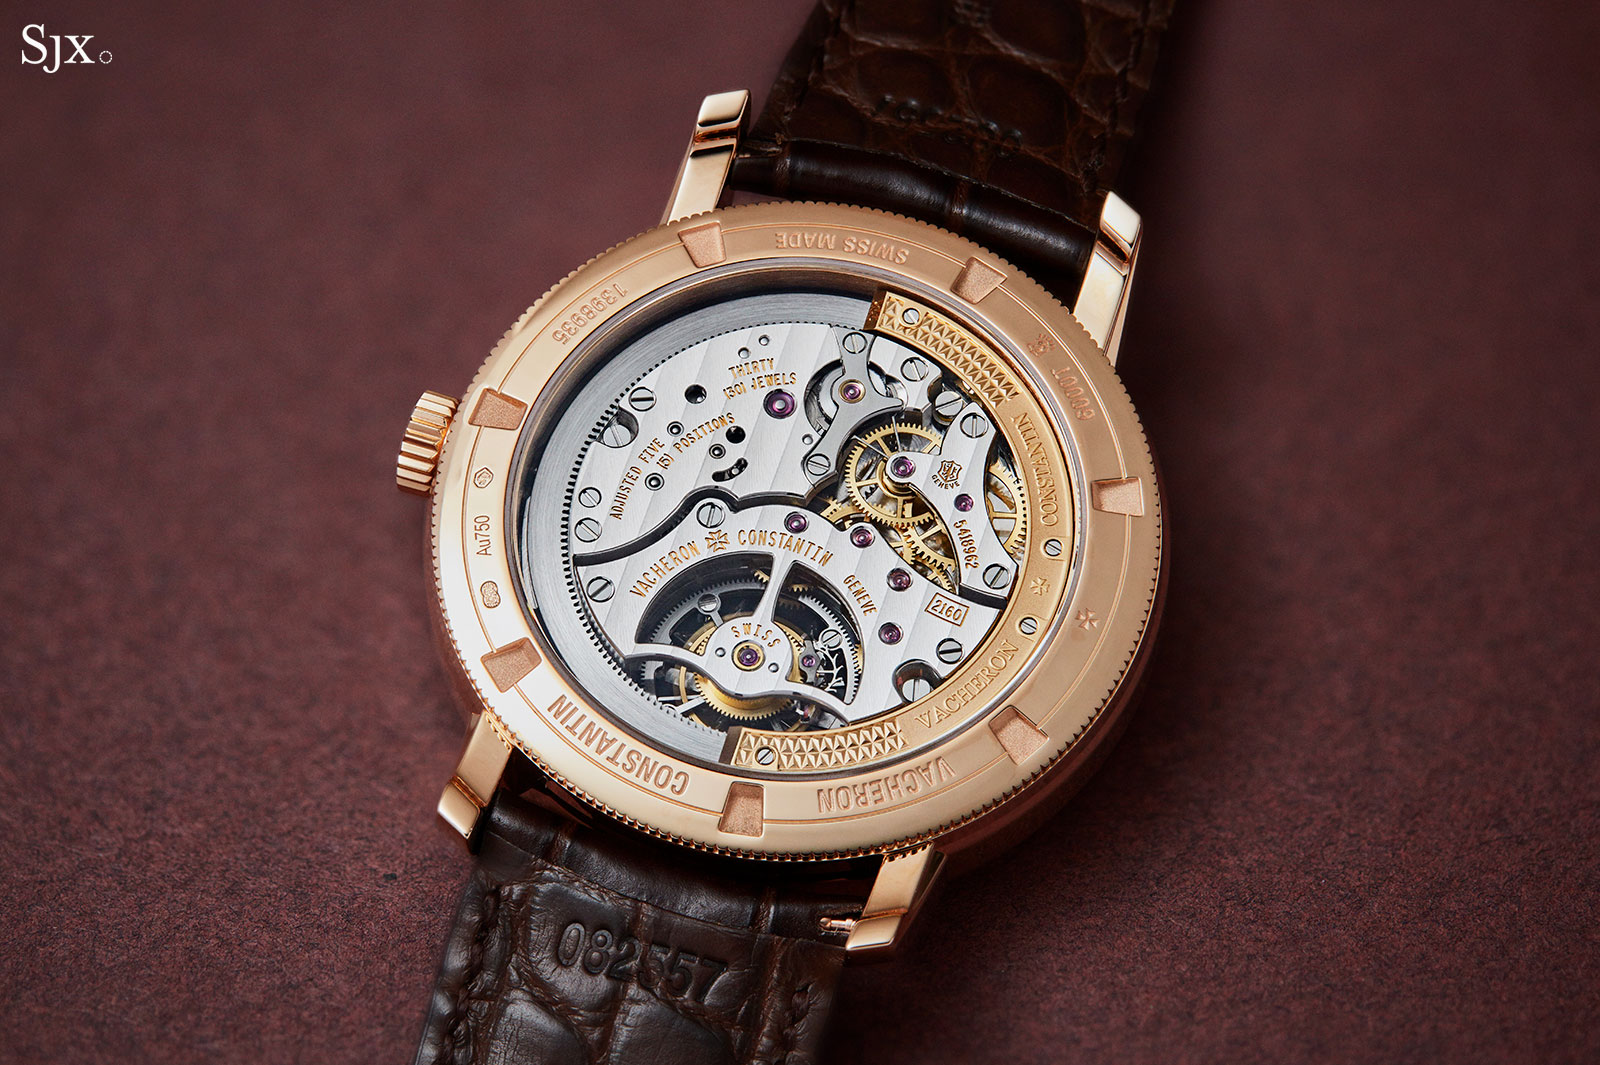 Vacheron Constantin Traditionnelle tourbillon automatic 8